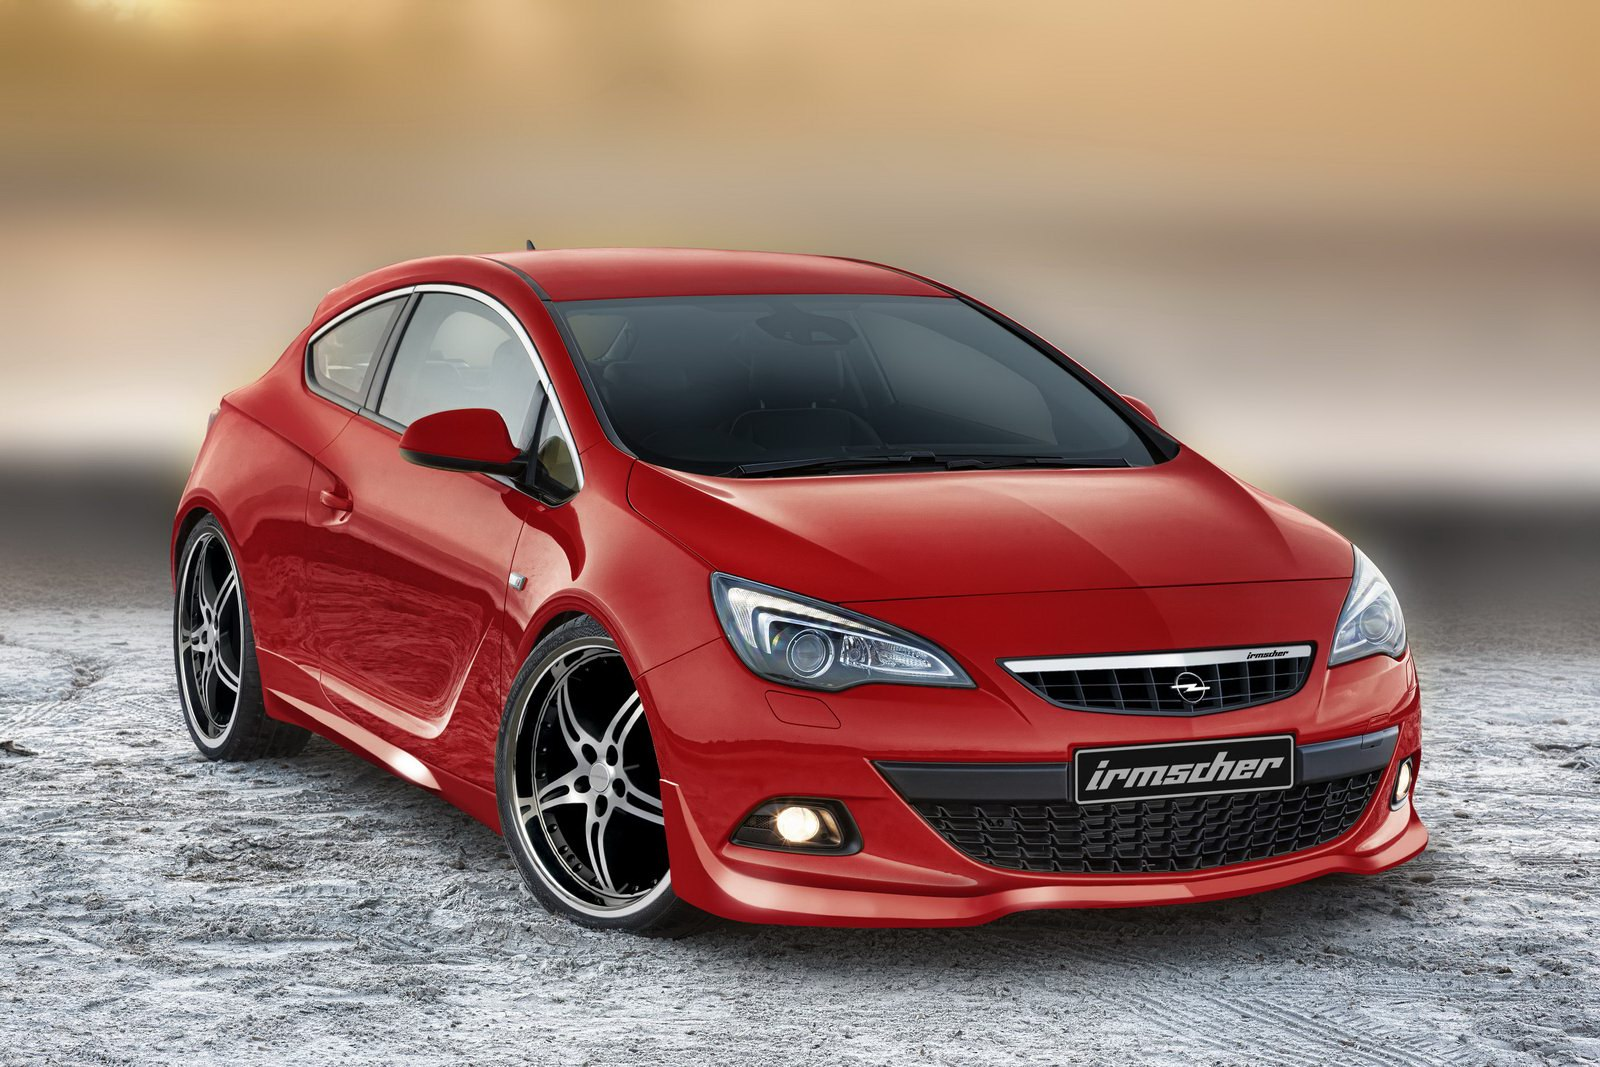 Irmscher Sports New Opel Astra GTC 1  THE  NEW OPEL ASTRA GTC TO PREMIERE IN FRANKFURT MOTOR SHOW